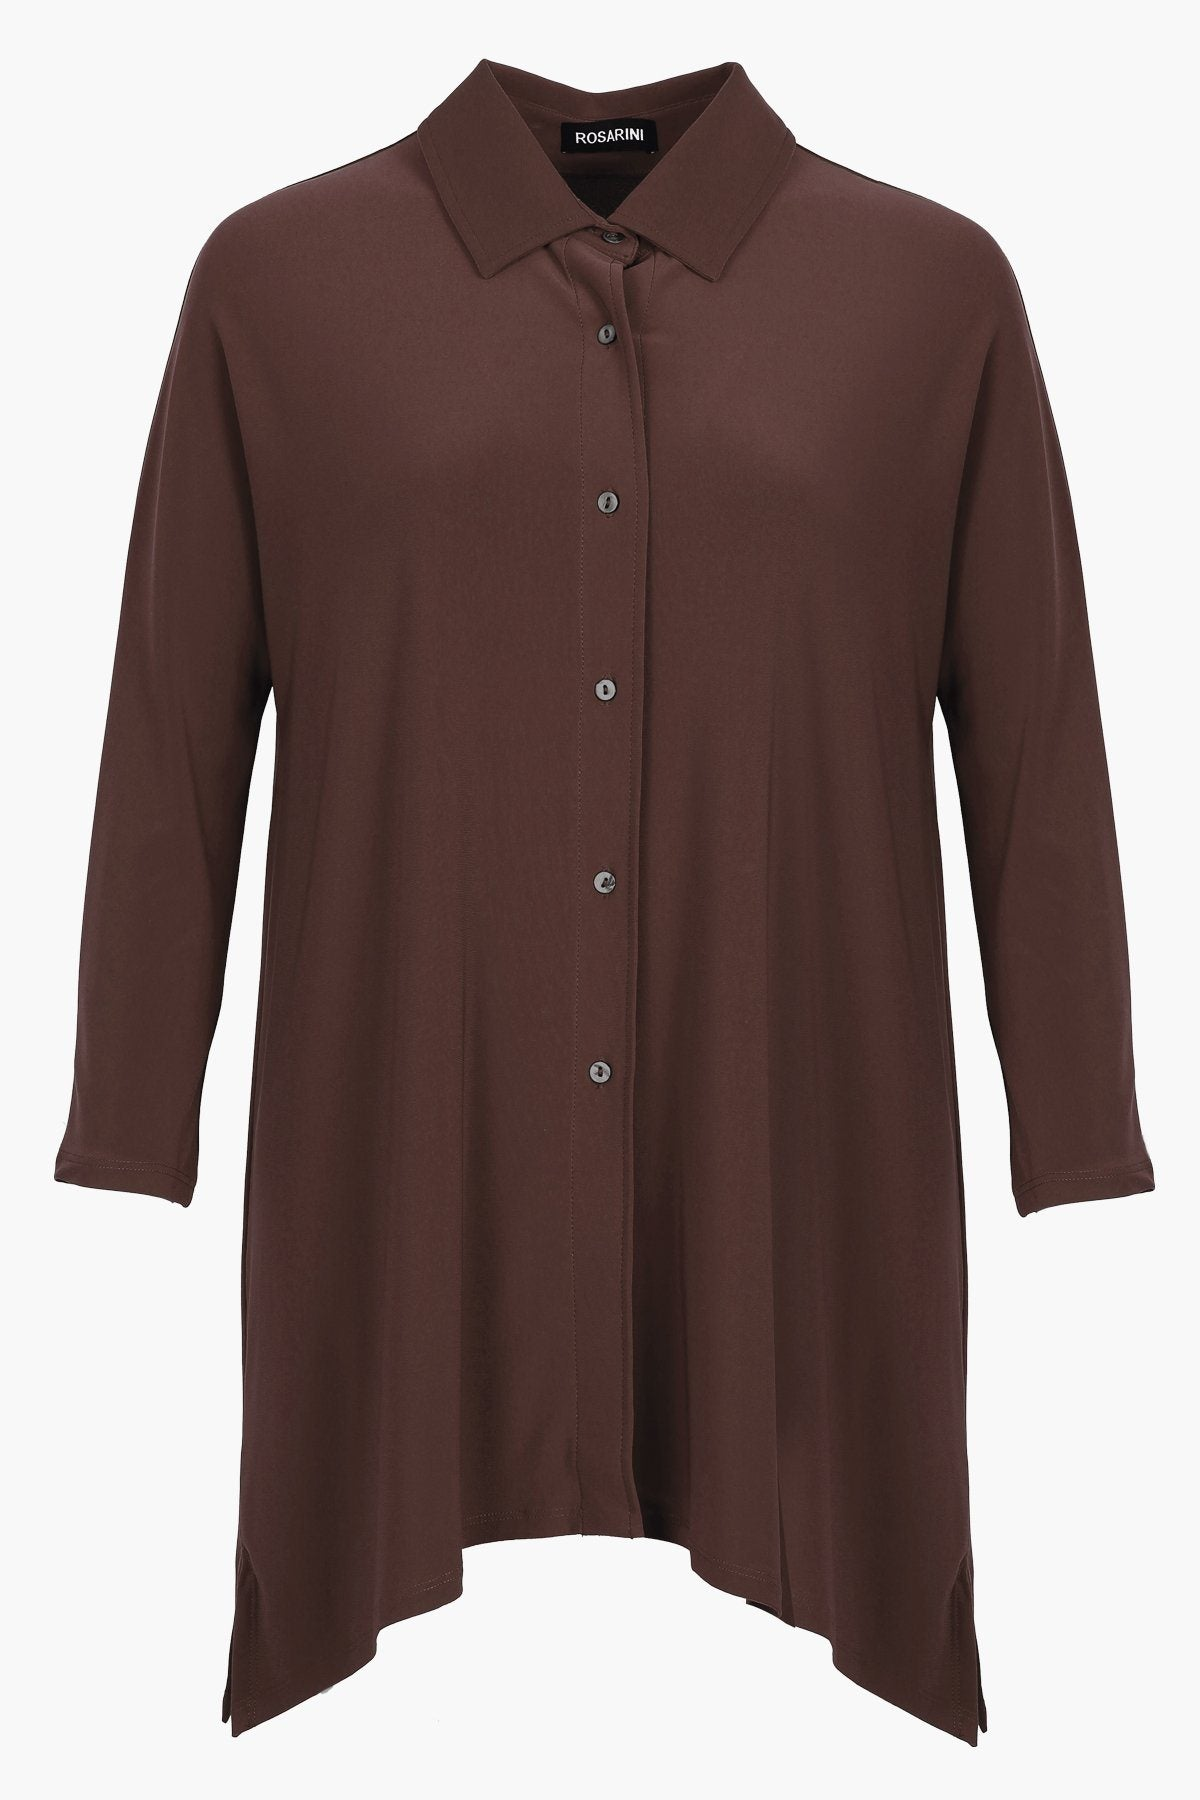 Women's Taupe Button Shirt with Curved Hem 3/4 Sleeves Travel Shirt Rosarini